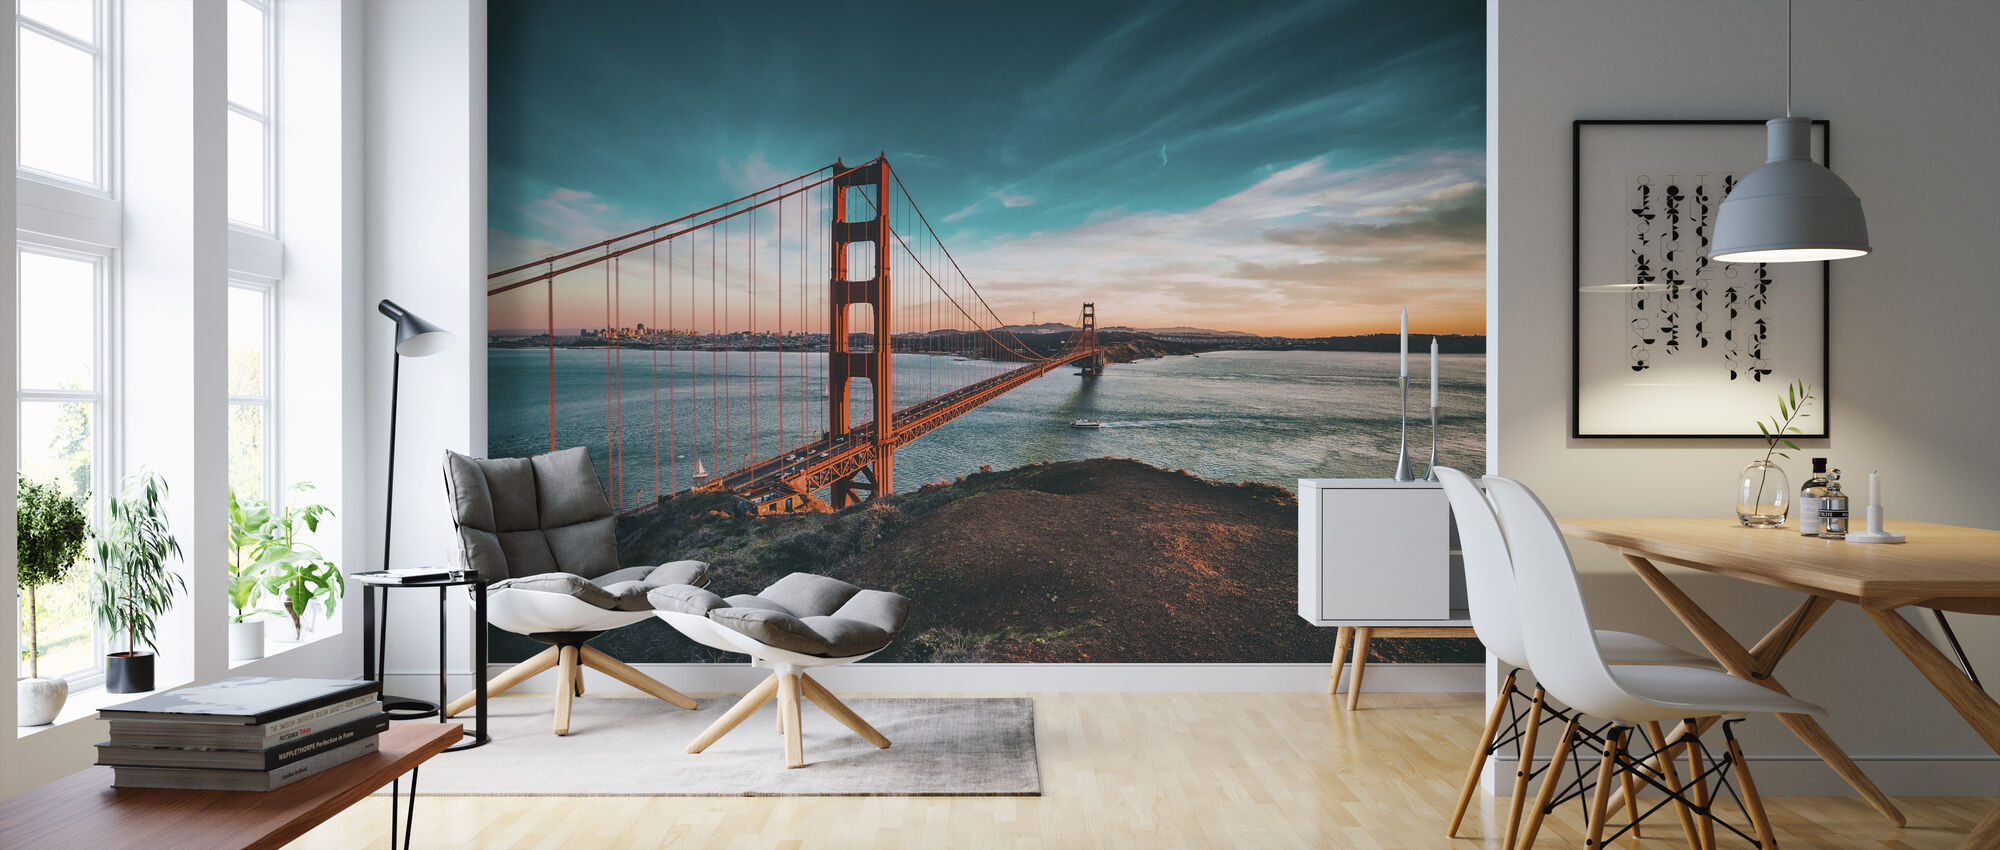 San Francisco Bridge - Wallpaper - Living Room